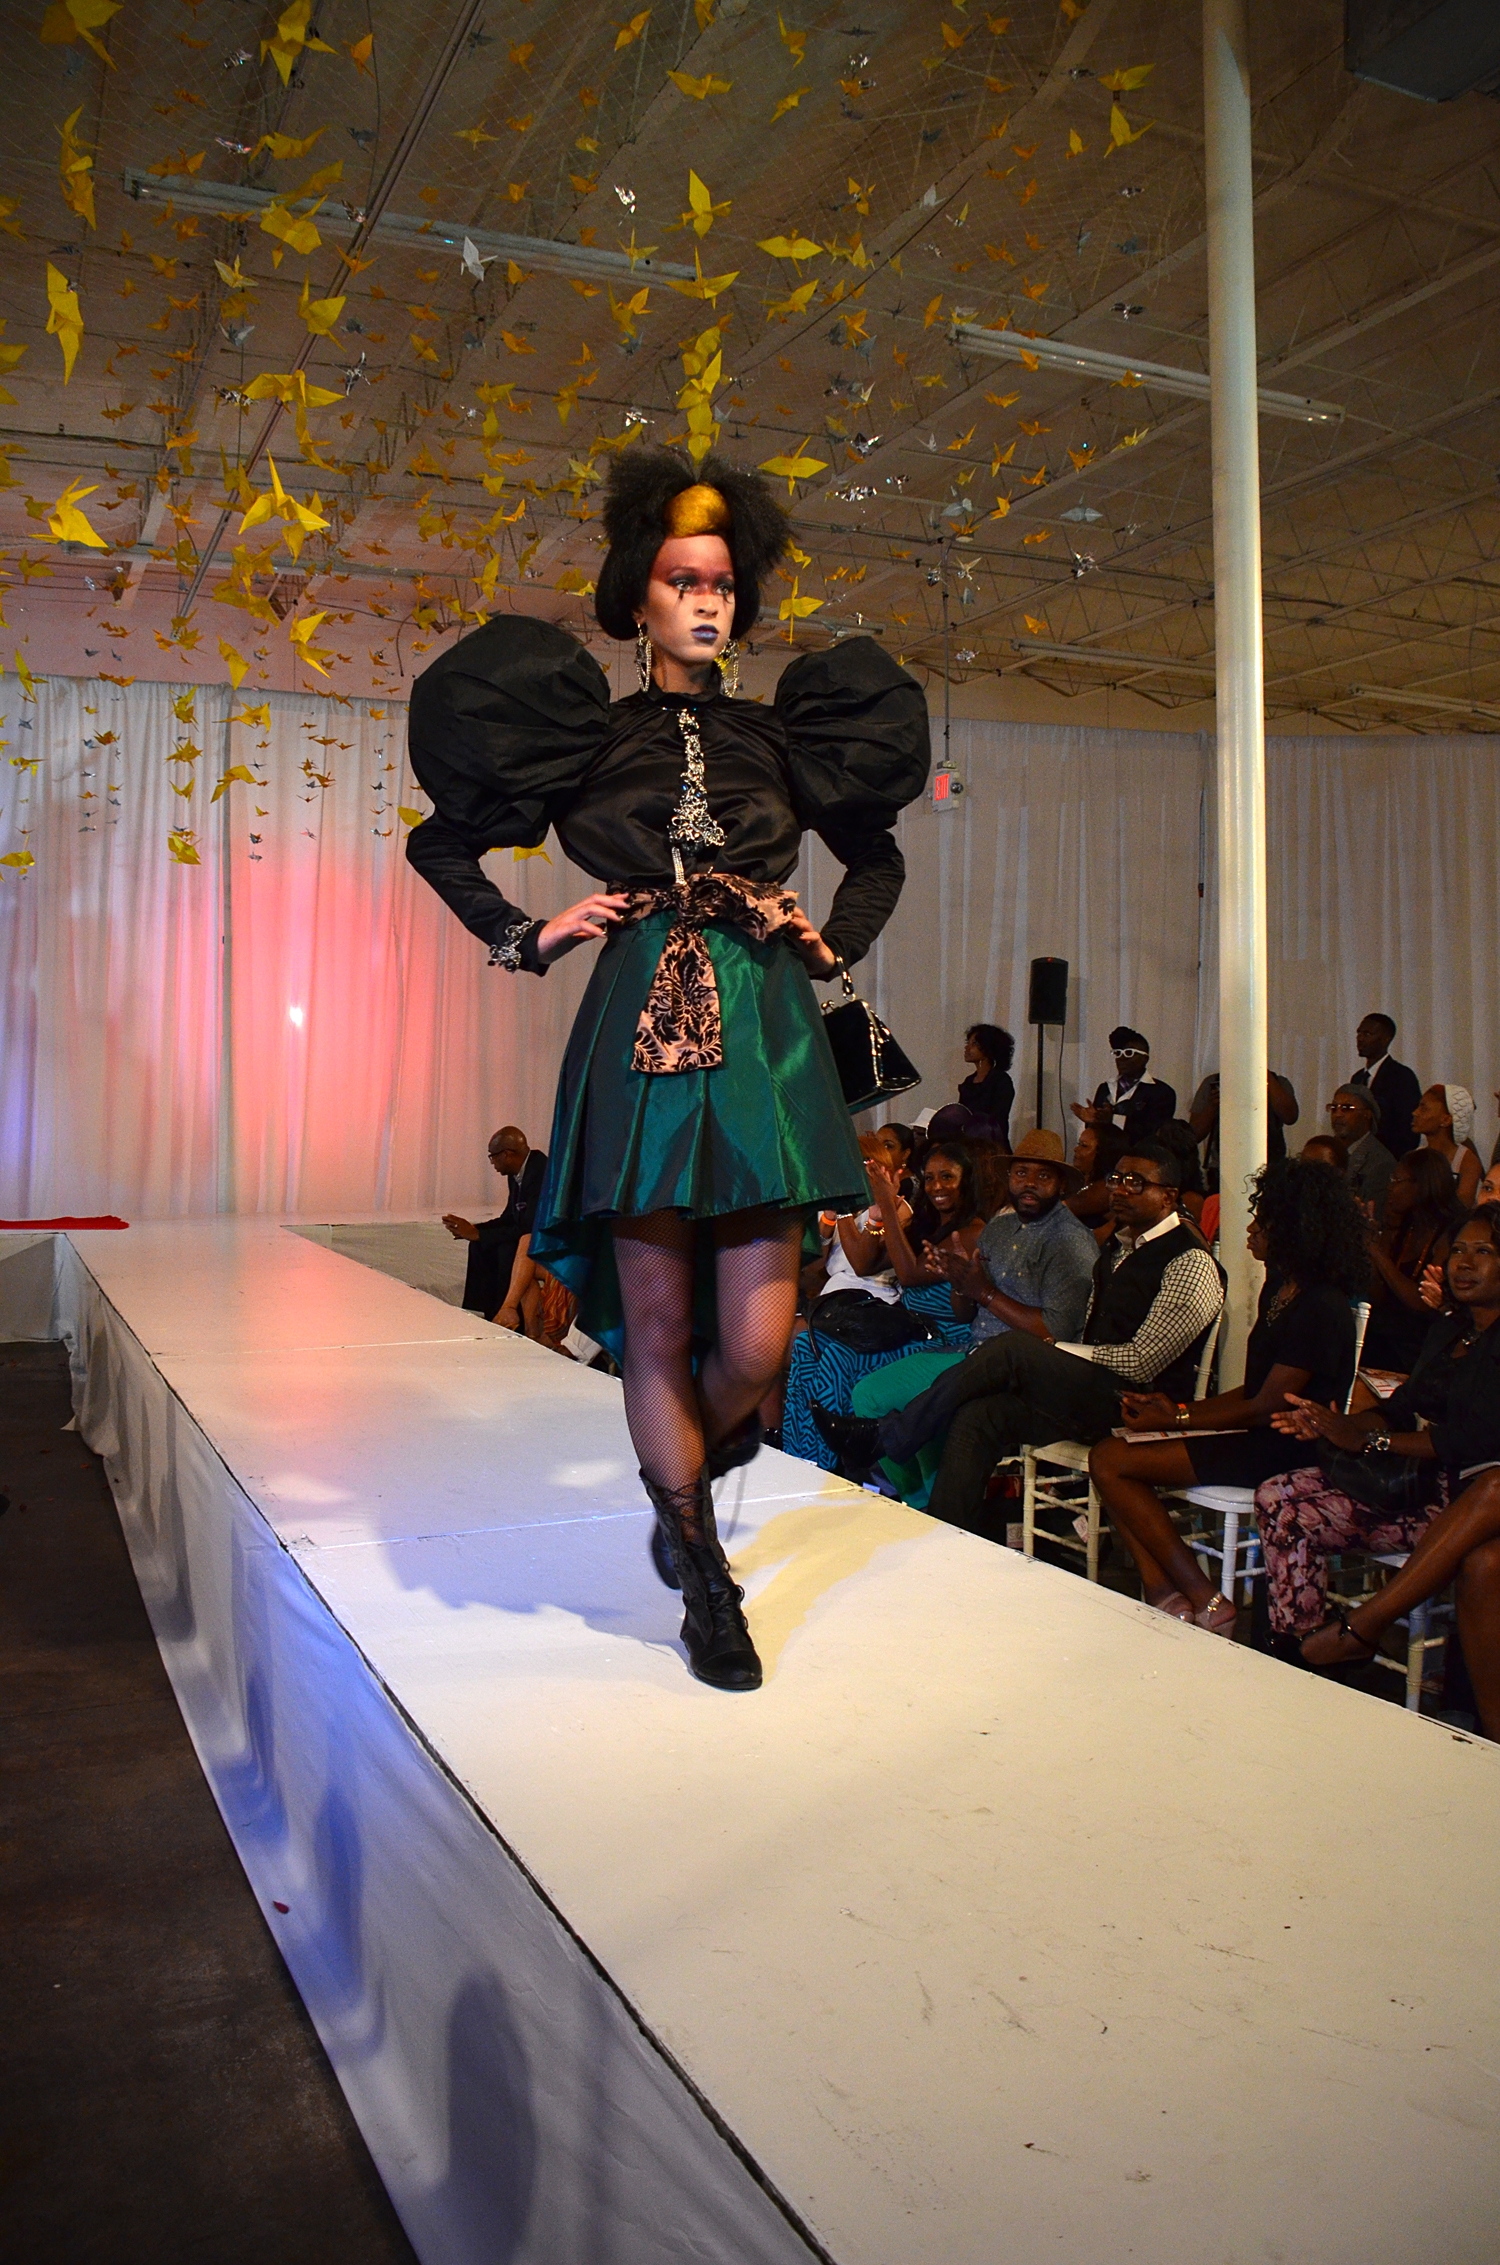 Clothing Designers In Atlanta The event Highlighted